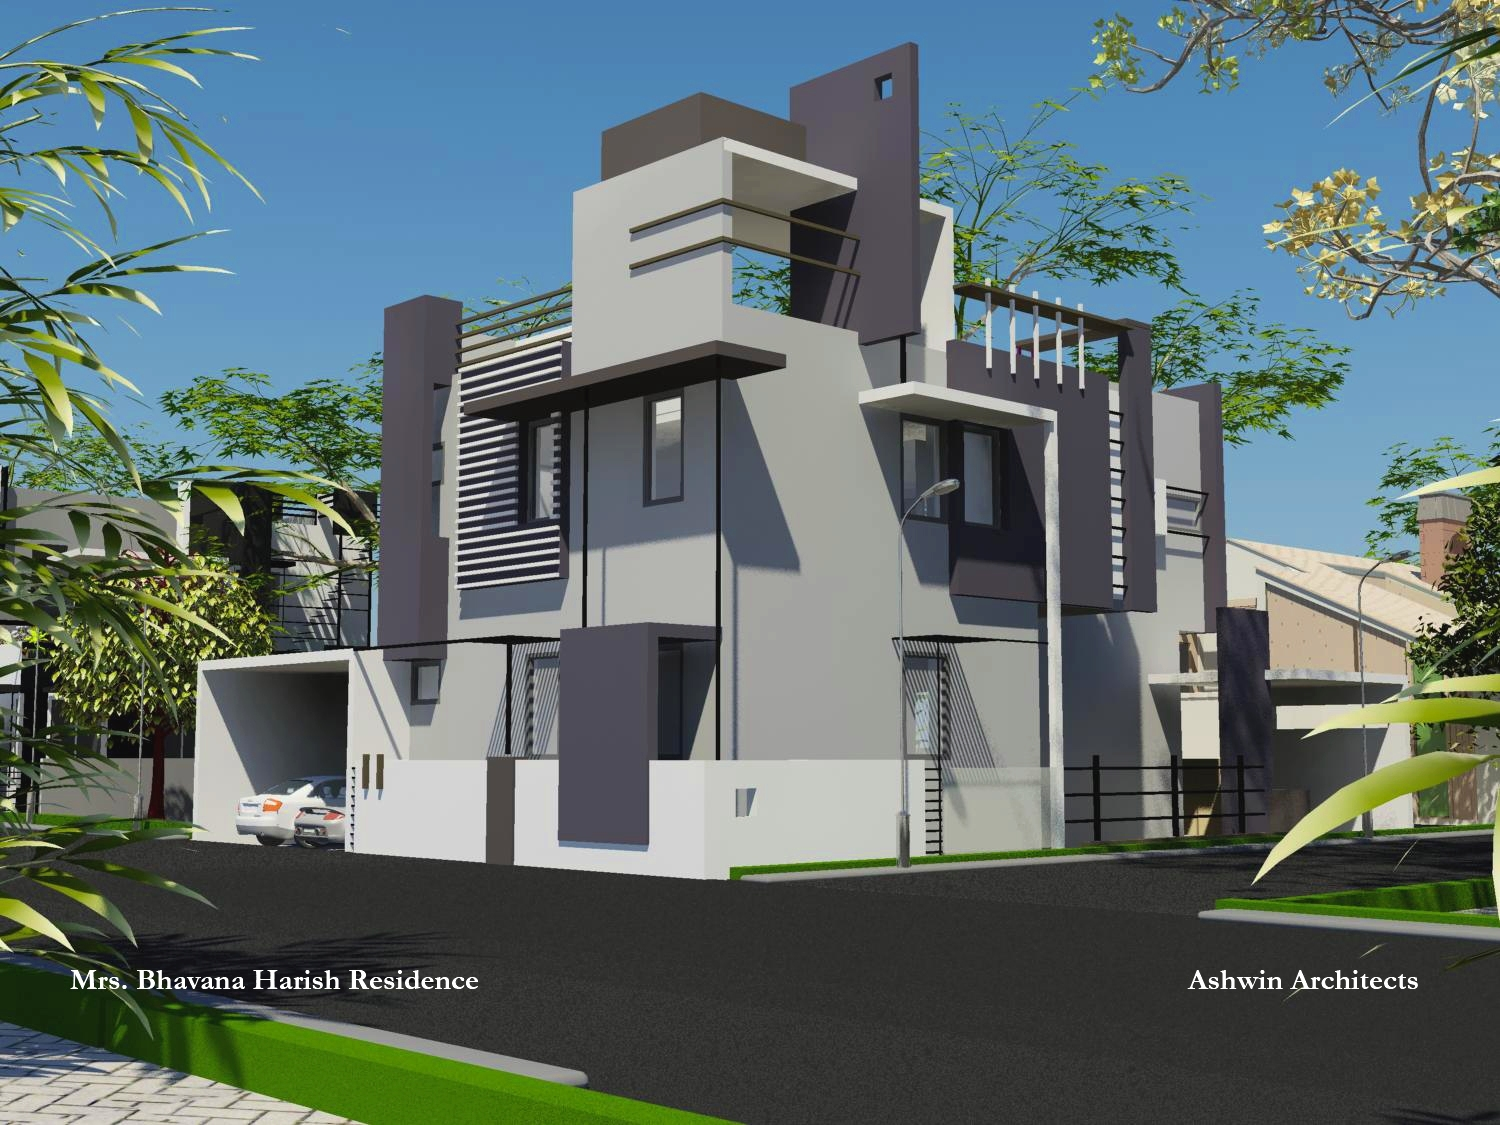 Outstanding Bhavana s Independent House Design by Architecture Firm Bangalore 1500 x 1125 · 576 kB · jpeg